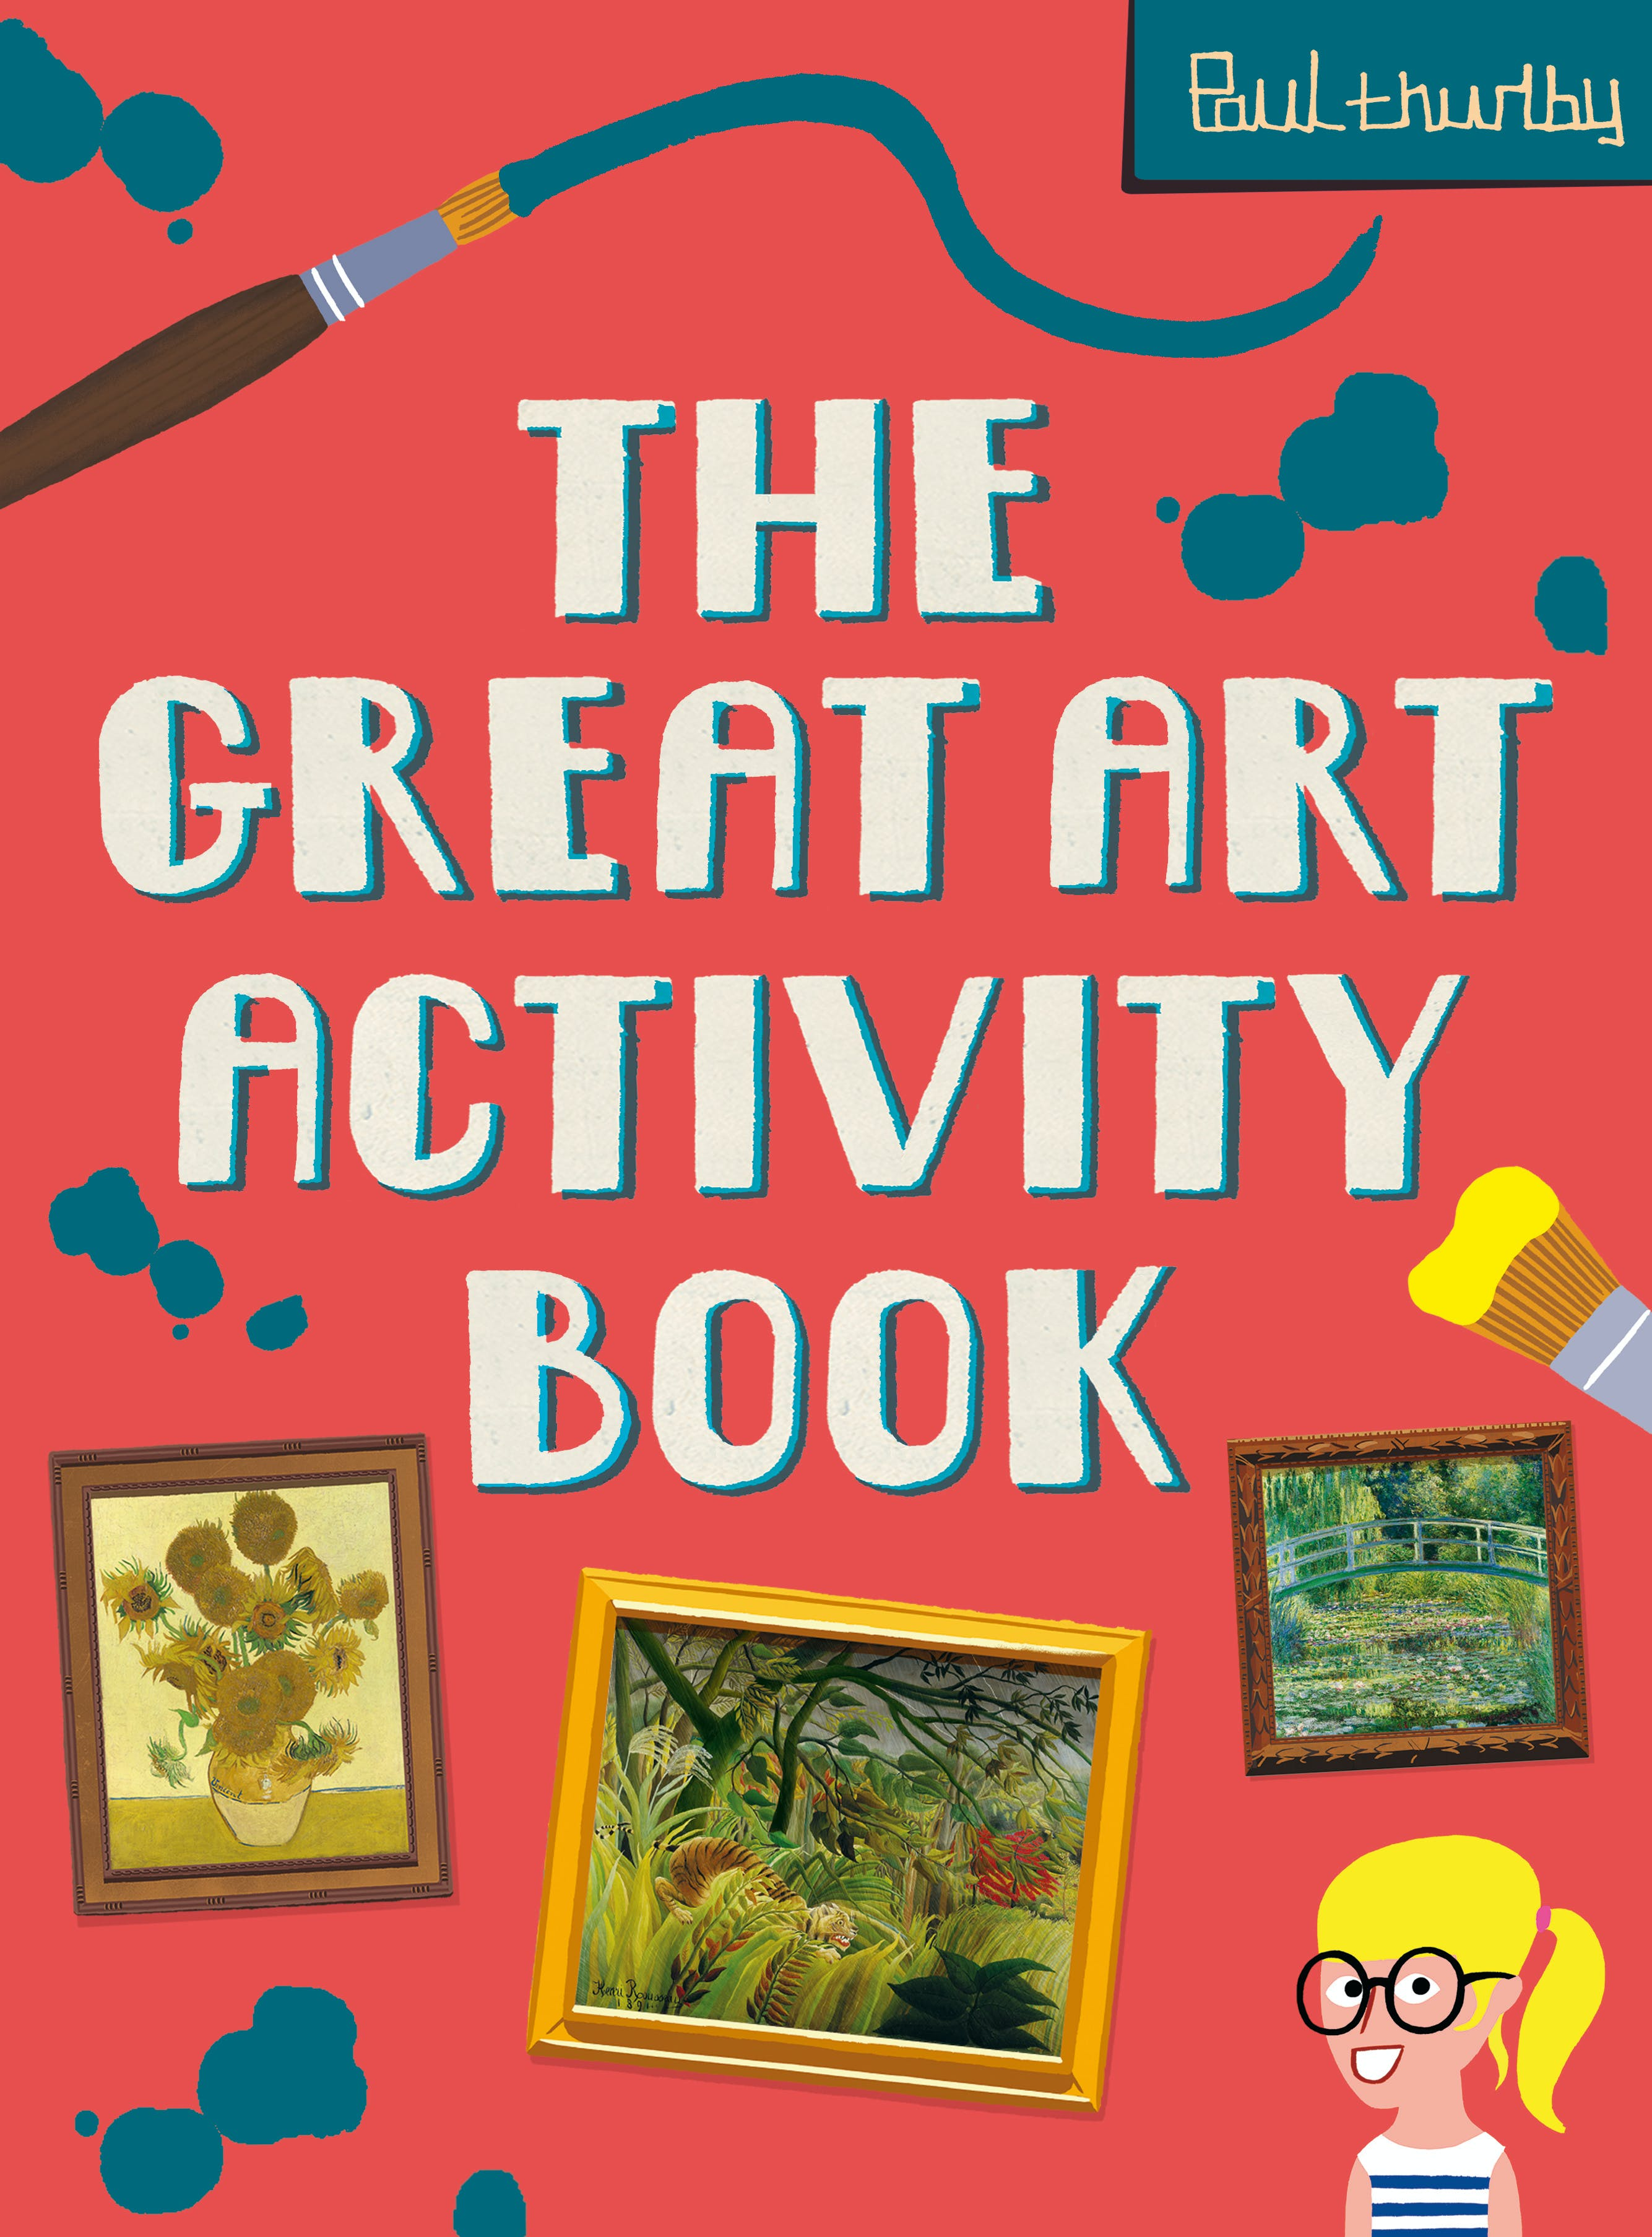 The Great Art Activity Book by Paul Thurlby